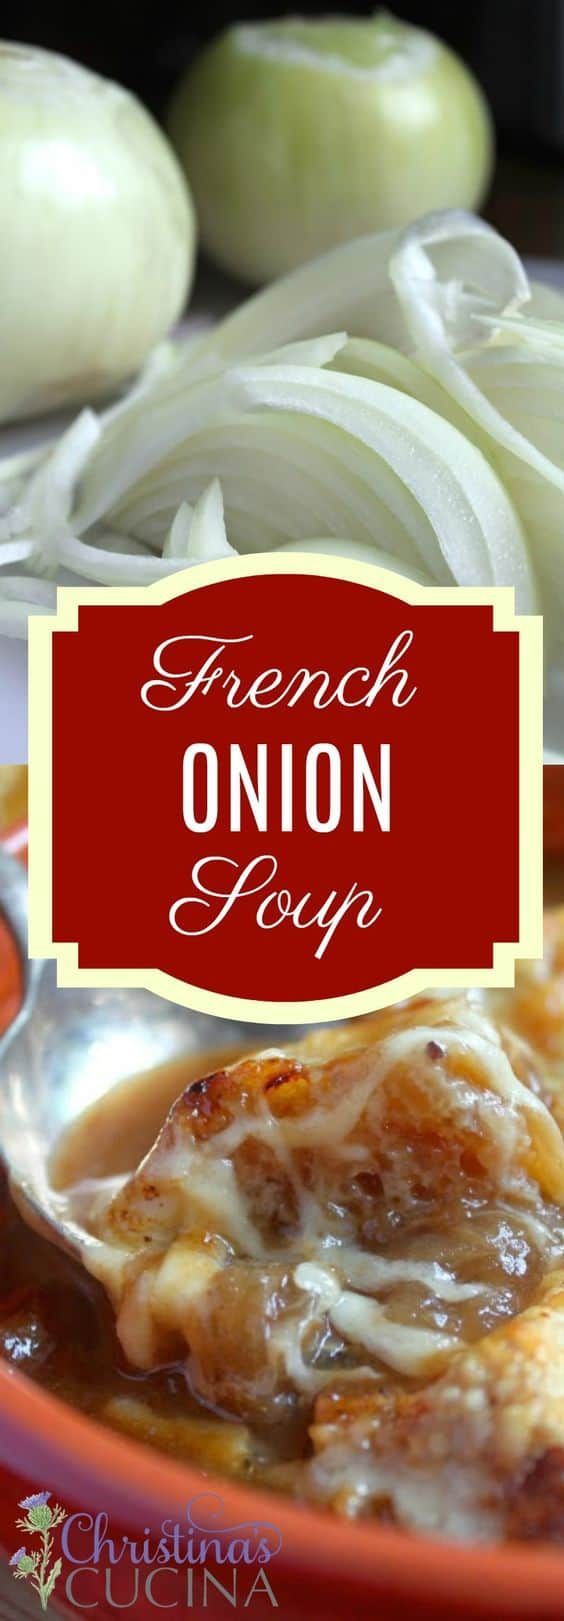 The French Onion Soup Julia Child Made Is A Classic Recipe But I Made One Tiny Change Which I Think Makes The Eating An In 2020 Recipes French Onion Soup French Onion